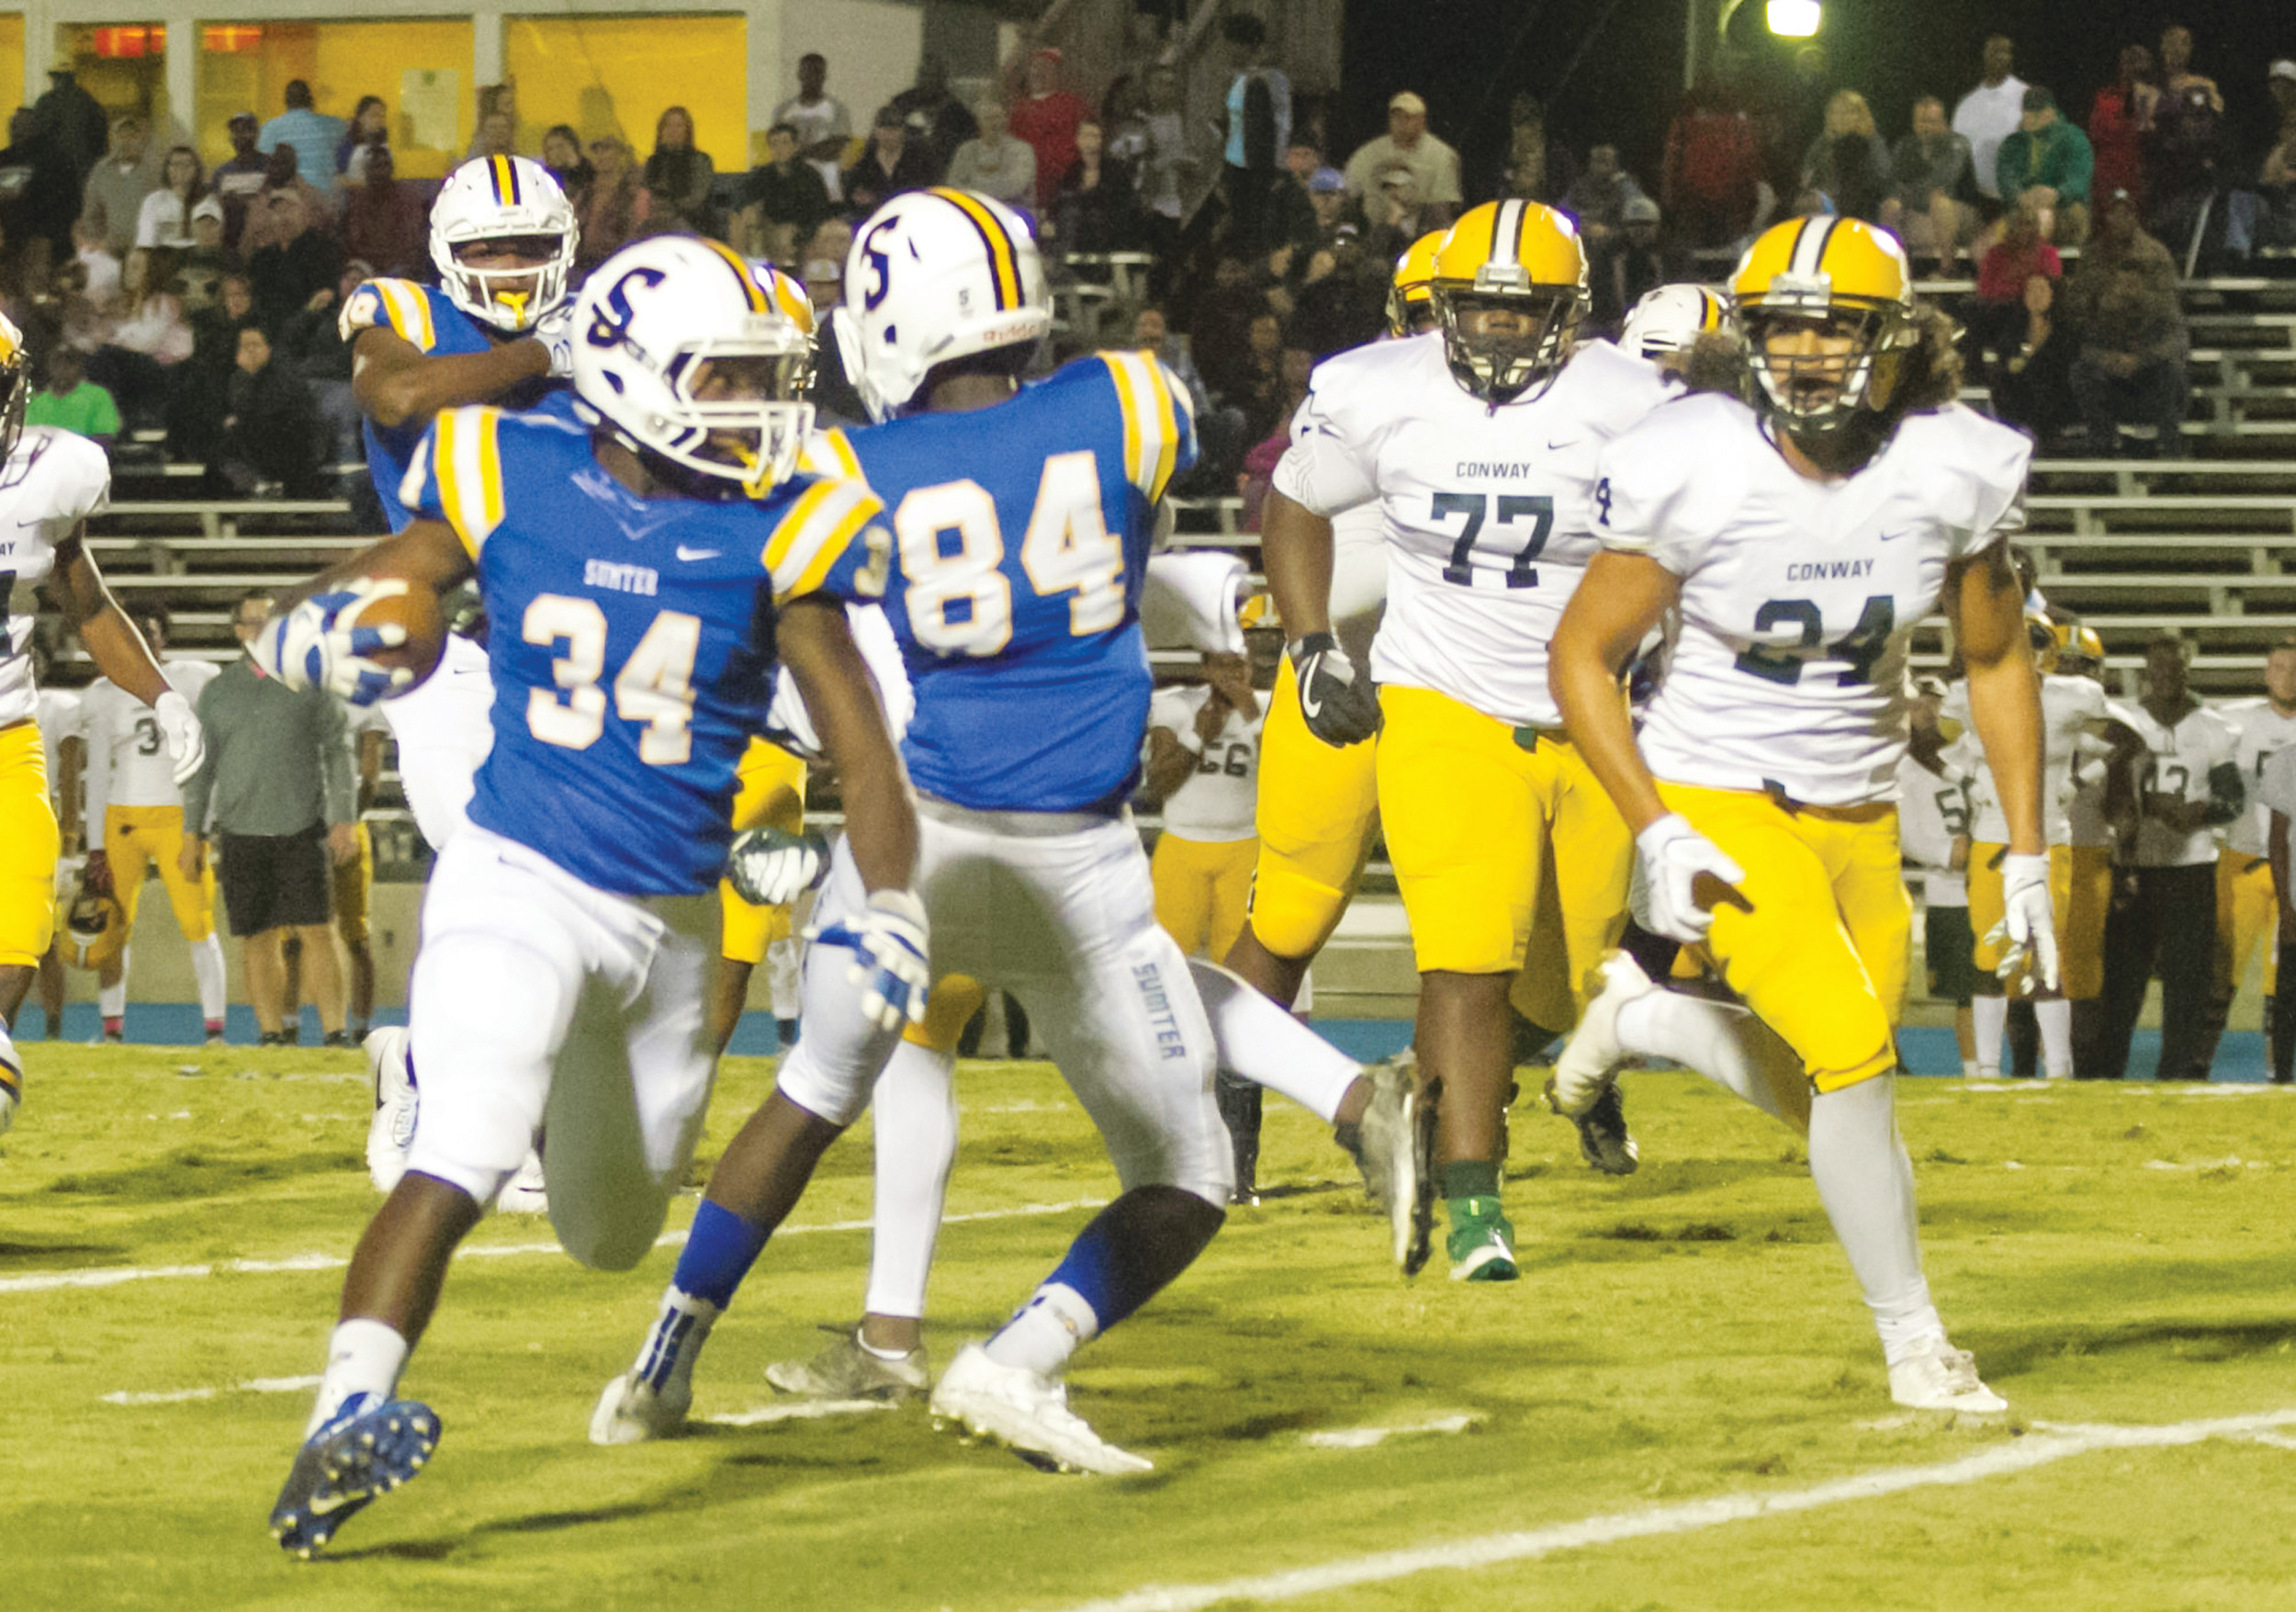 Sumter running back Da'jon Butts (34) turns the corner in the Gamecocks' 14-13 loss to Conway on Oct. 20. SHS will be playing host to White Knoll in the first round of the 5A state playoffs today at Memorial Stadium beginning at 7:30 p.m.